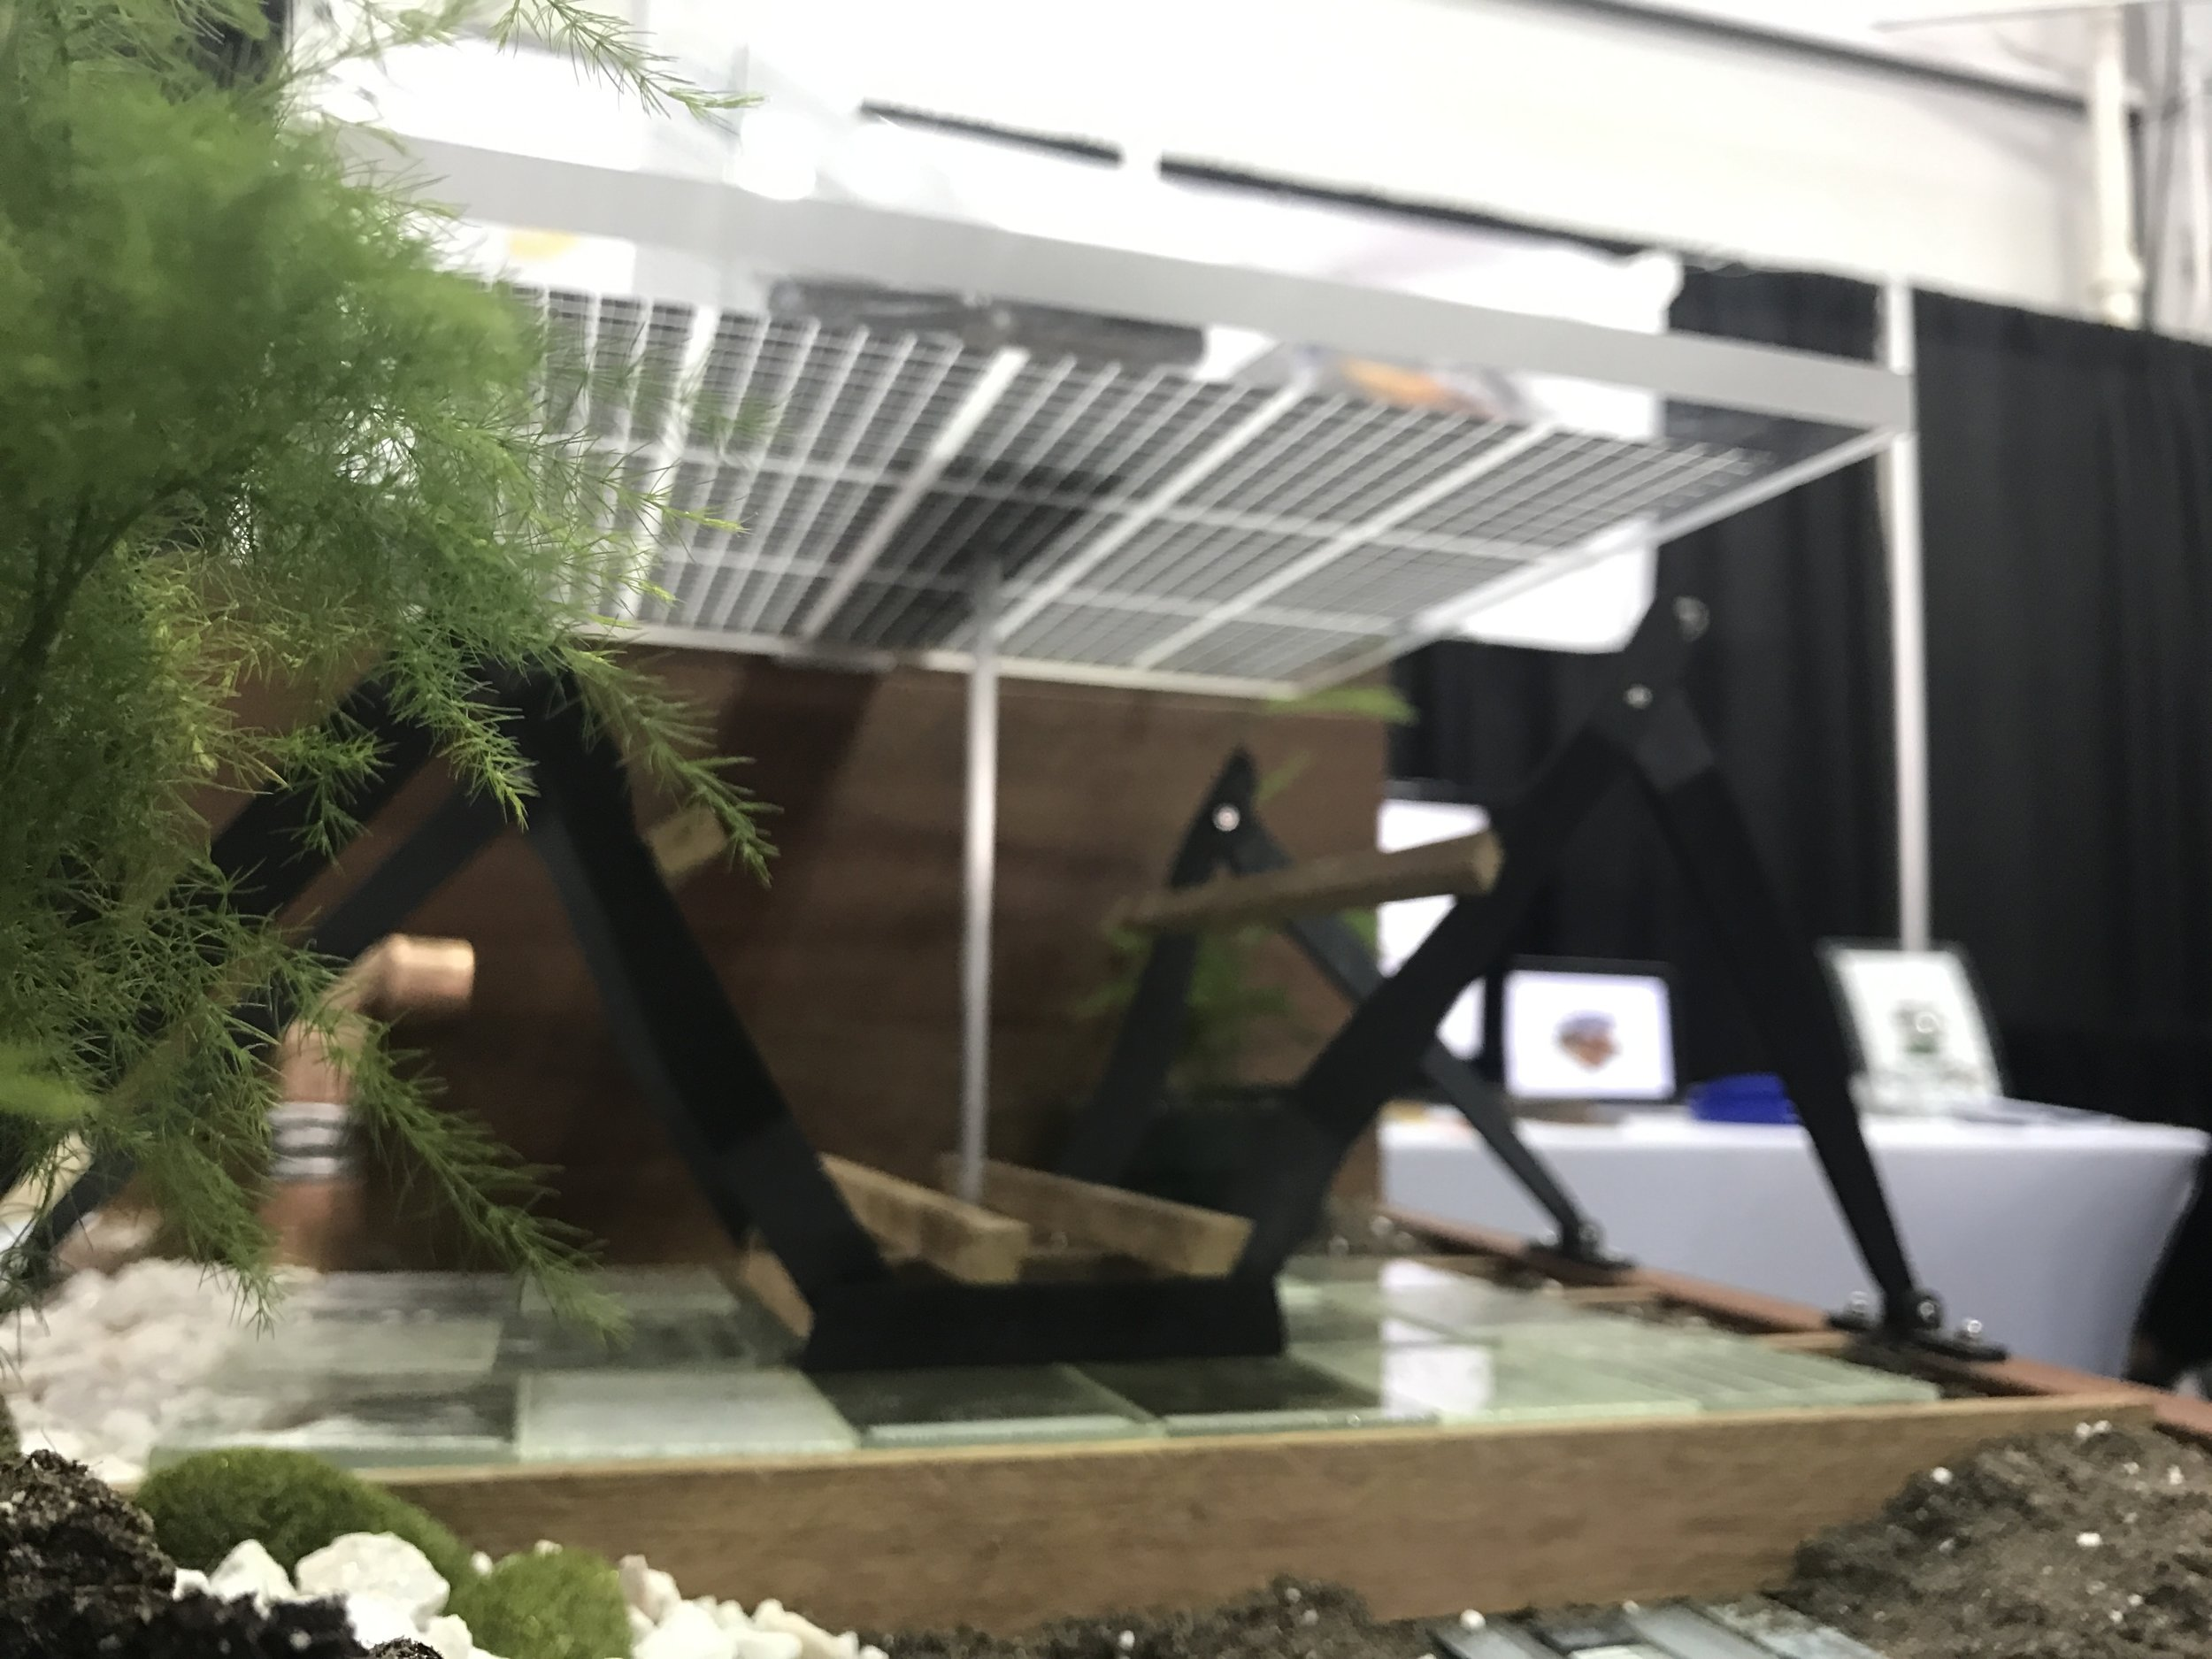 inhabit SOLAR model canopy